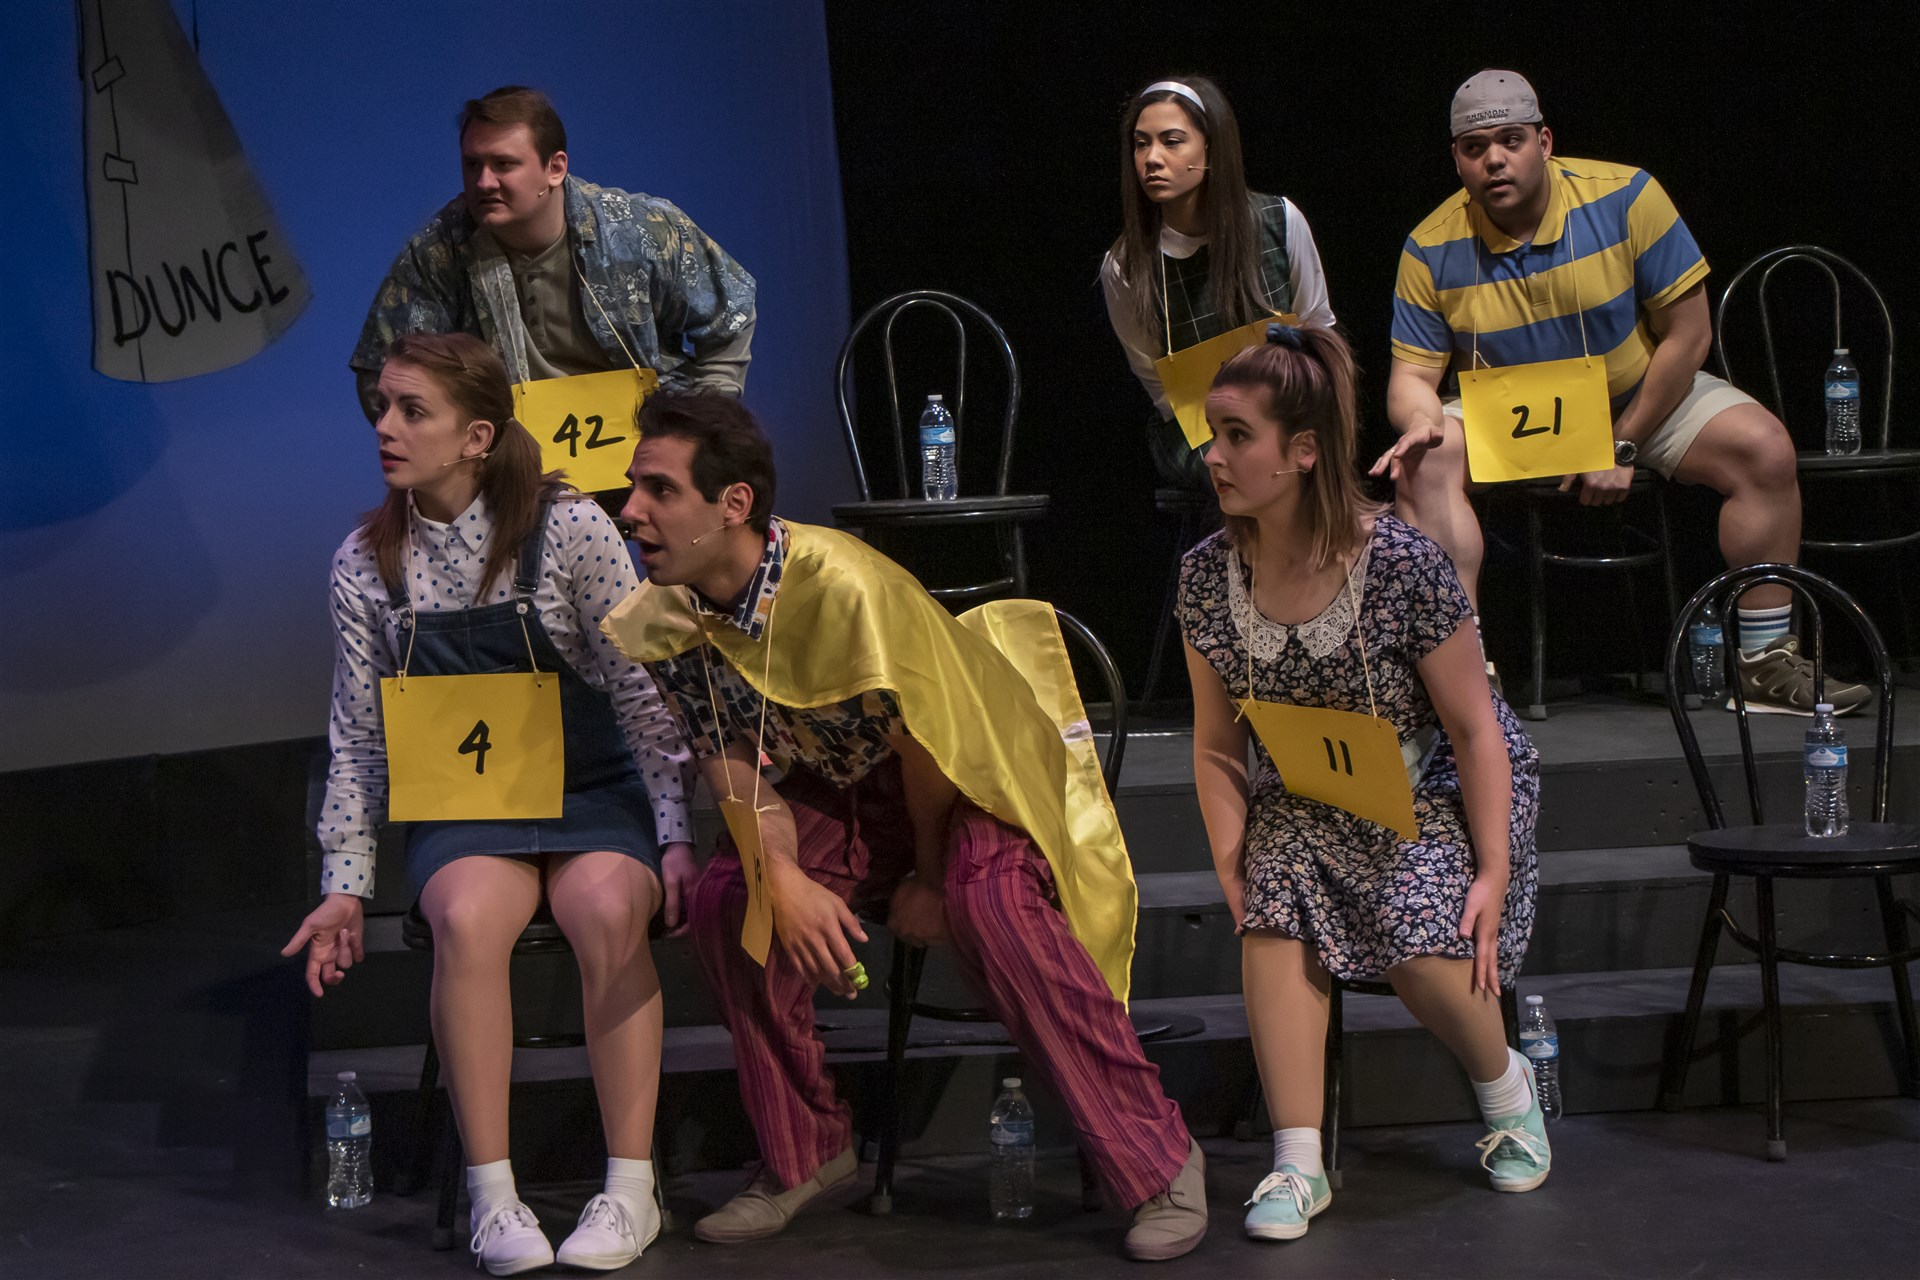 The spellers at the bee include, from left, front, Logainne (Stephanie Stascak), Leaf (Adam Qutaishat), Olive (Ava Bush), back, William (Gage Patterson), Marcy (Ashley Oviedo) and Chip (Romesh Alex Jaya).